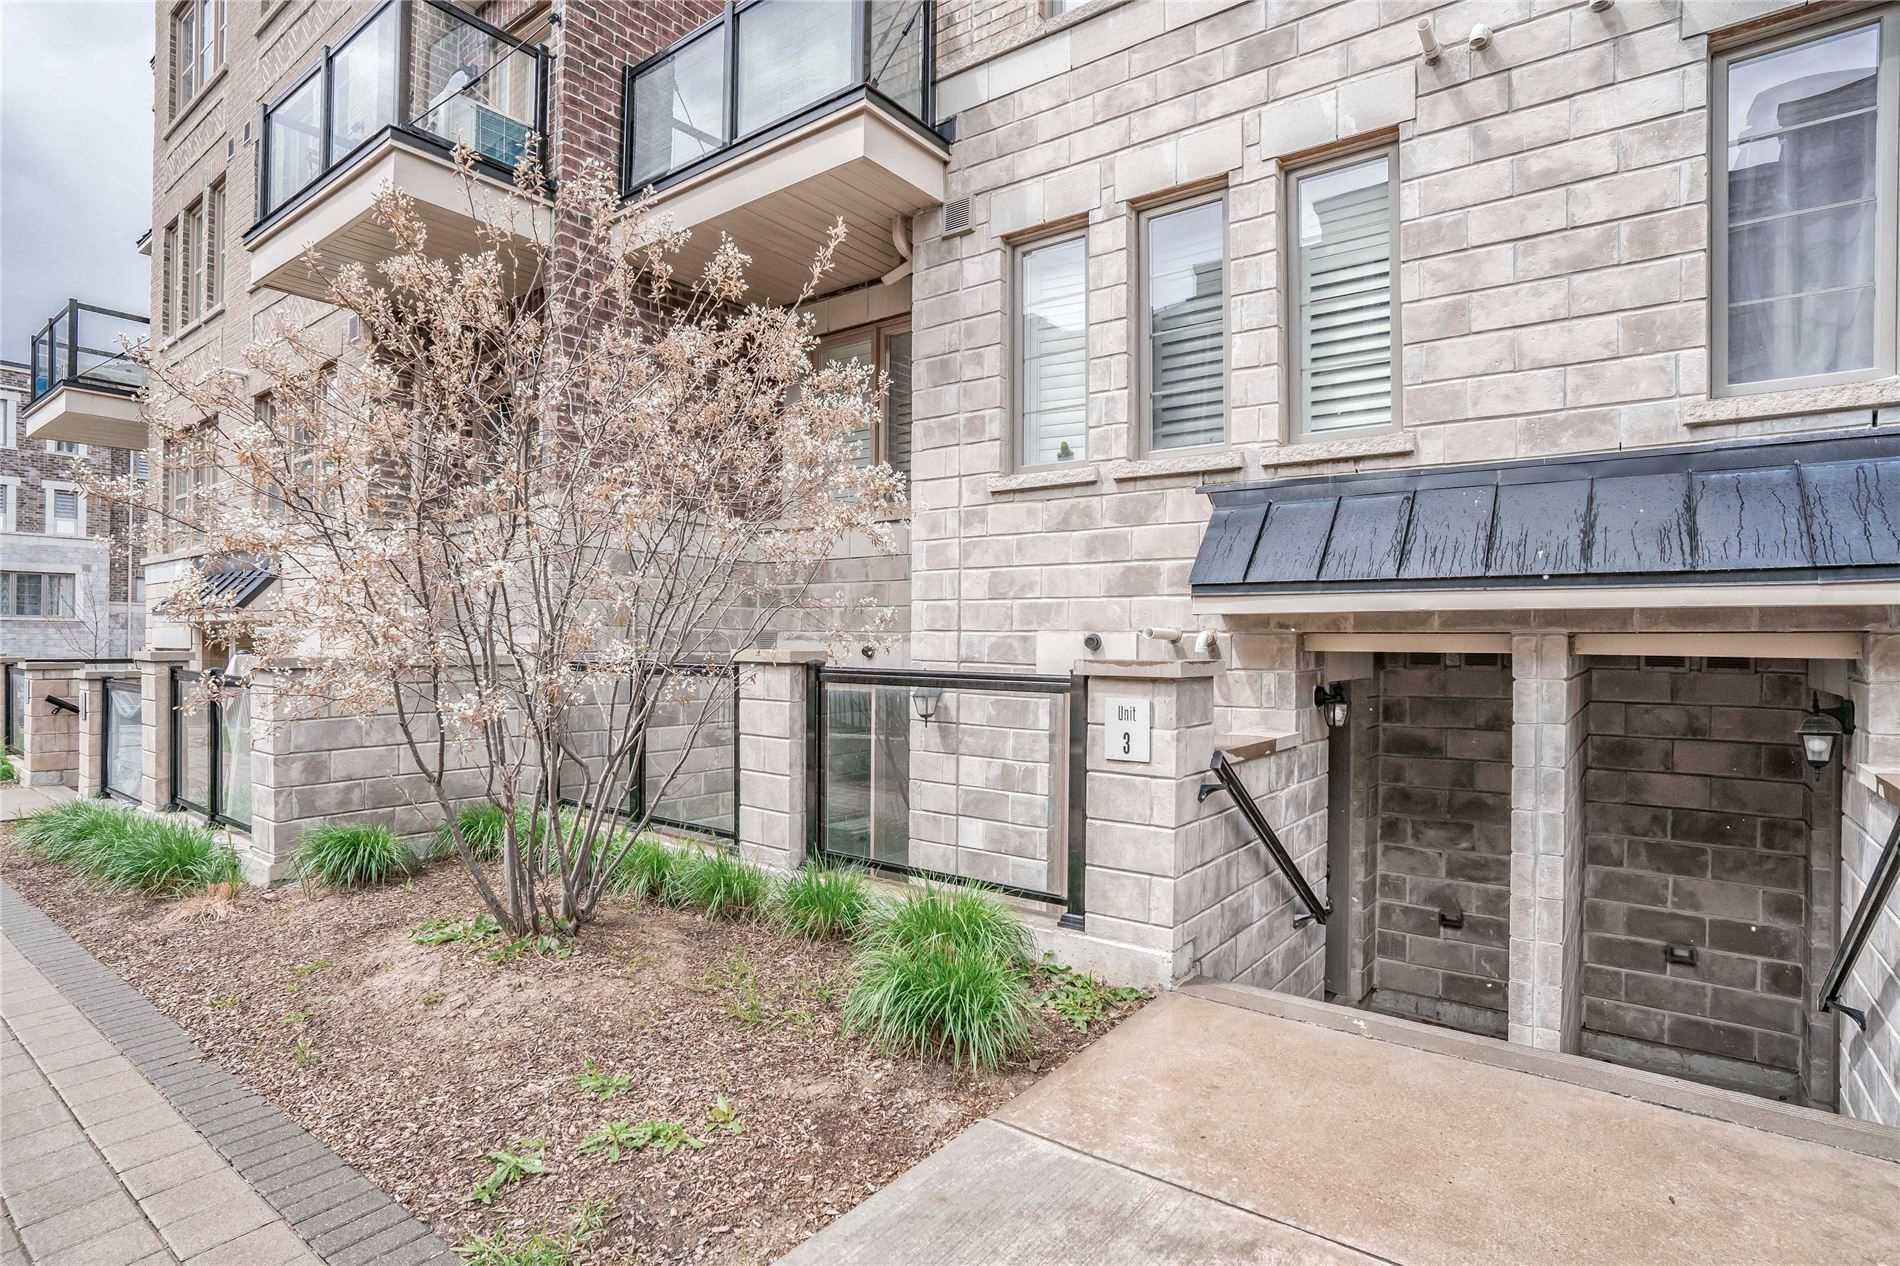 2335 Sheppard Ave W, unit 3 for sale in Toronto - image #2